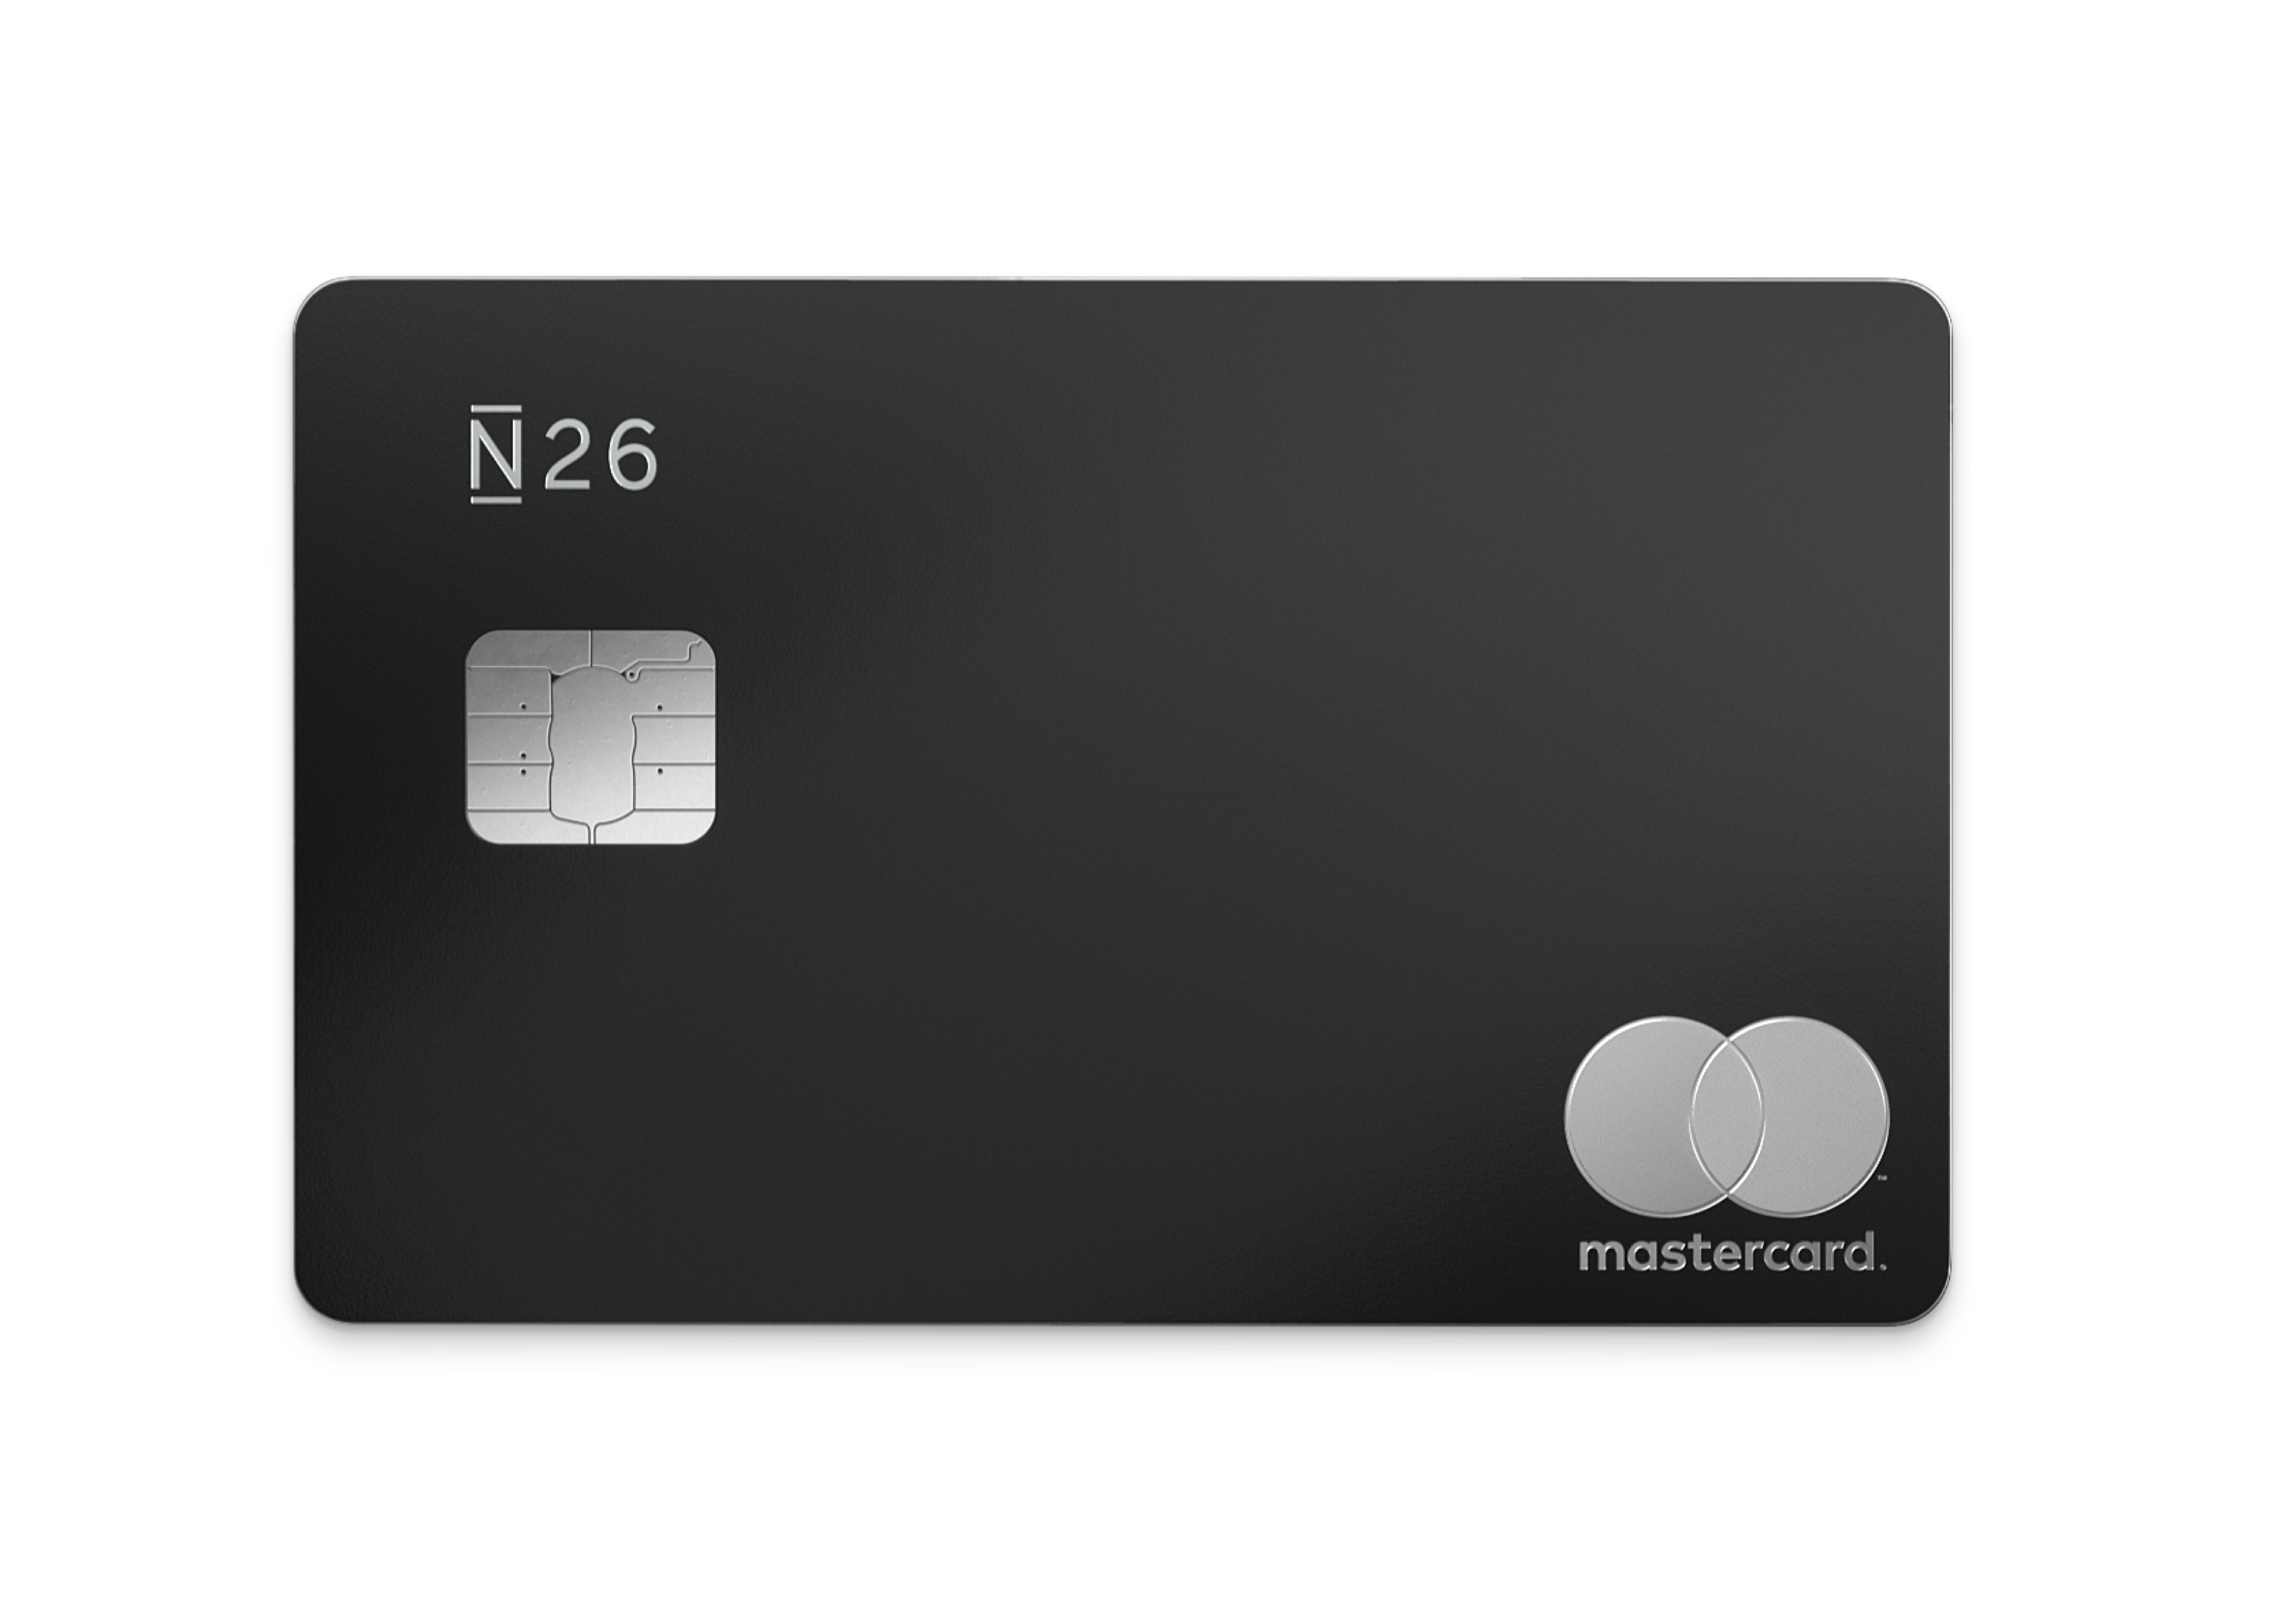 N26 Press Image of our Premium Metal Card in Charcoal Black